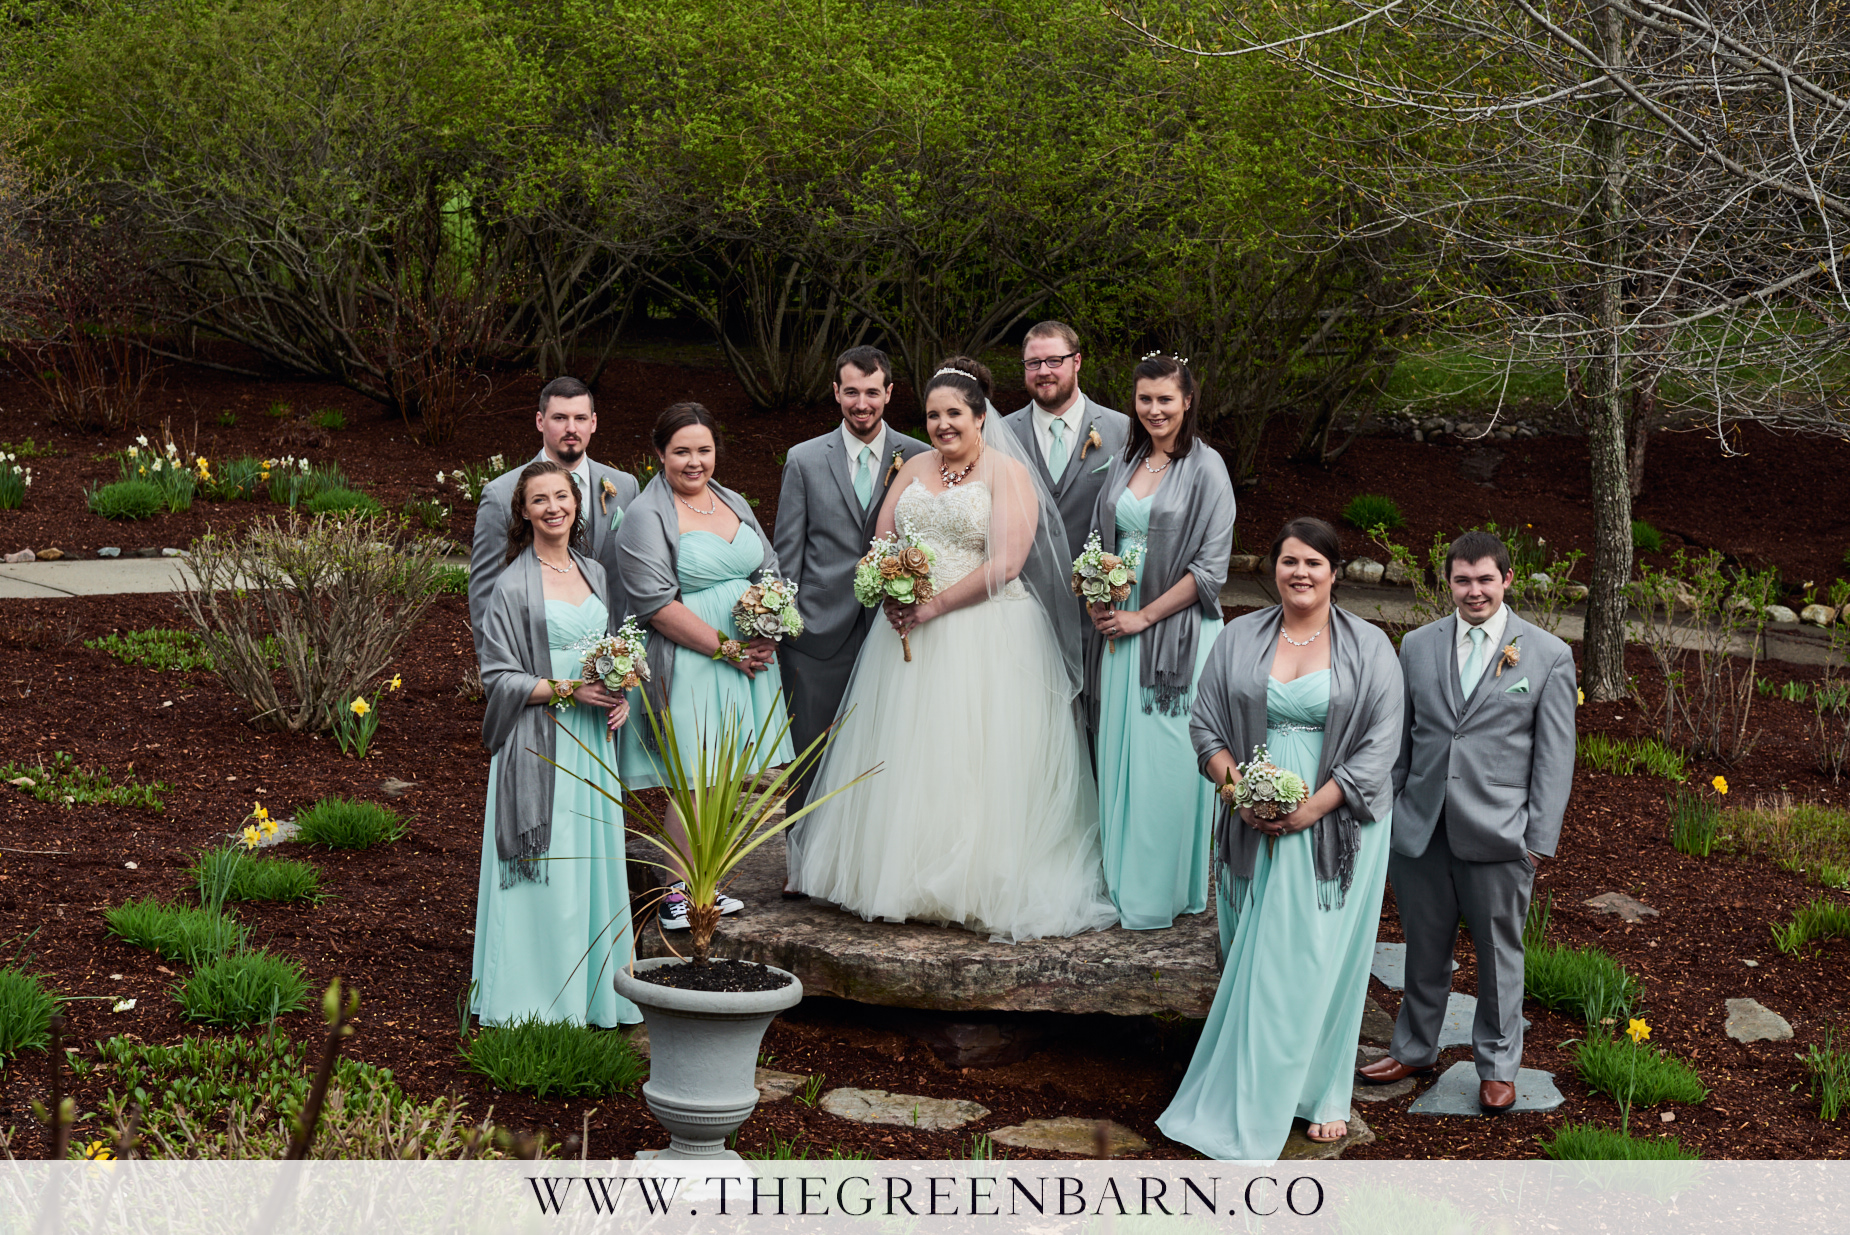 Bridal Party Photo in the Garden Ceremony Space at Catamount Country Club in Williston Vermont